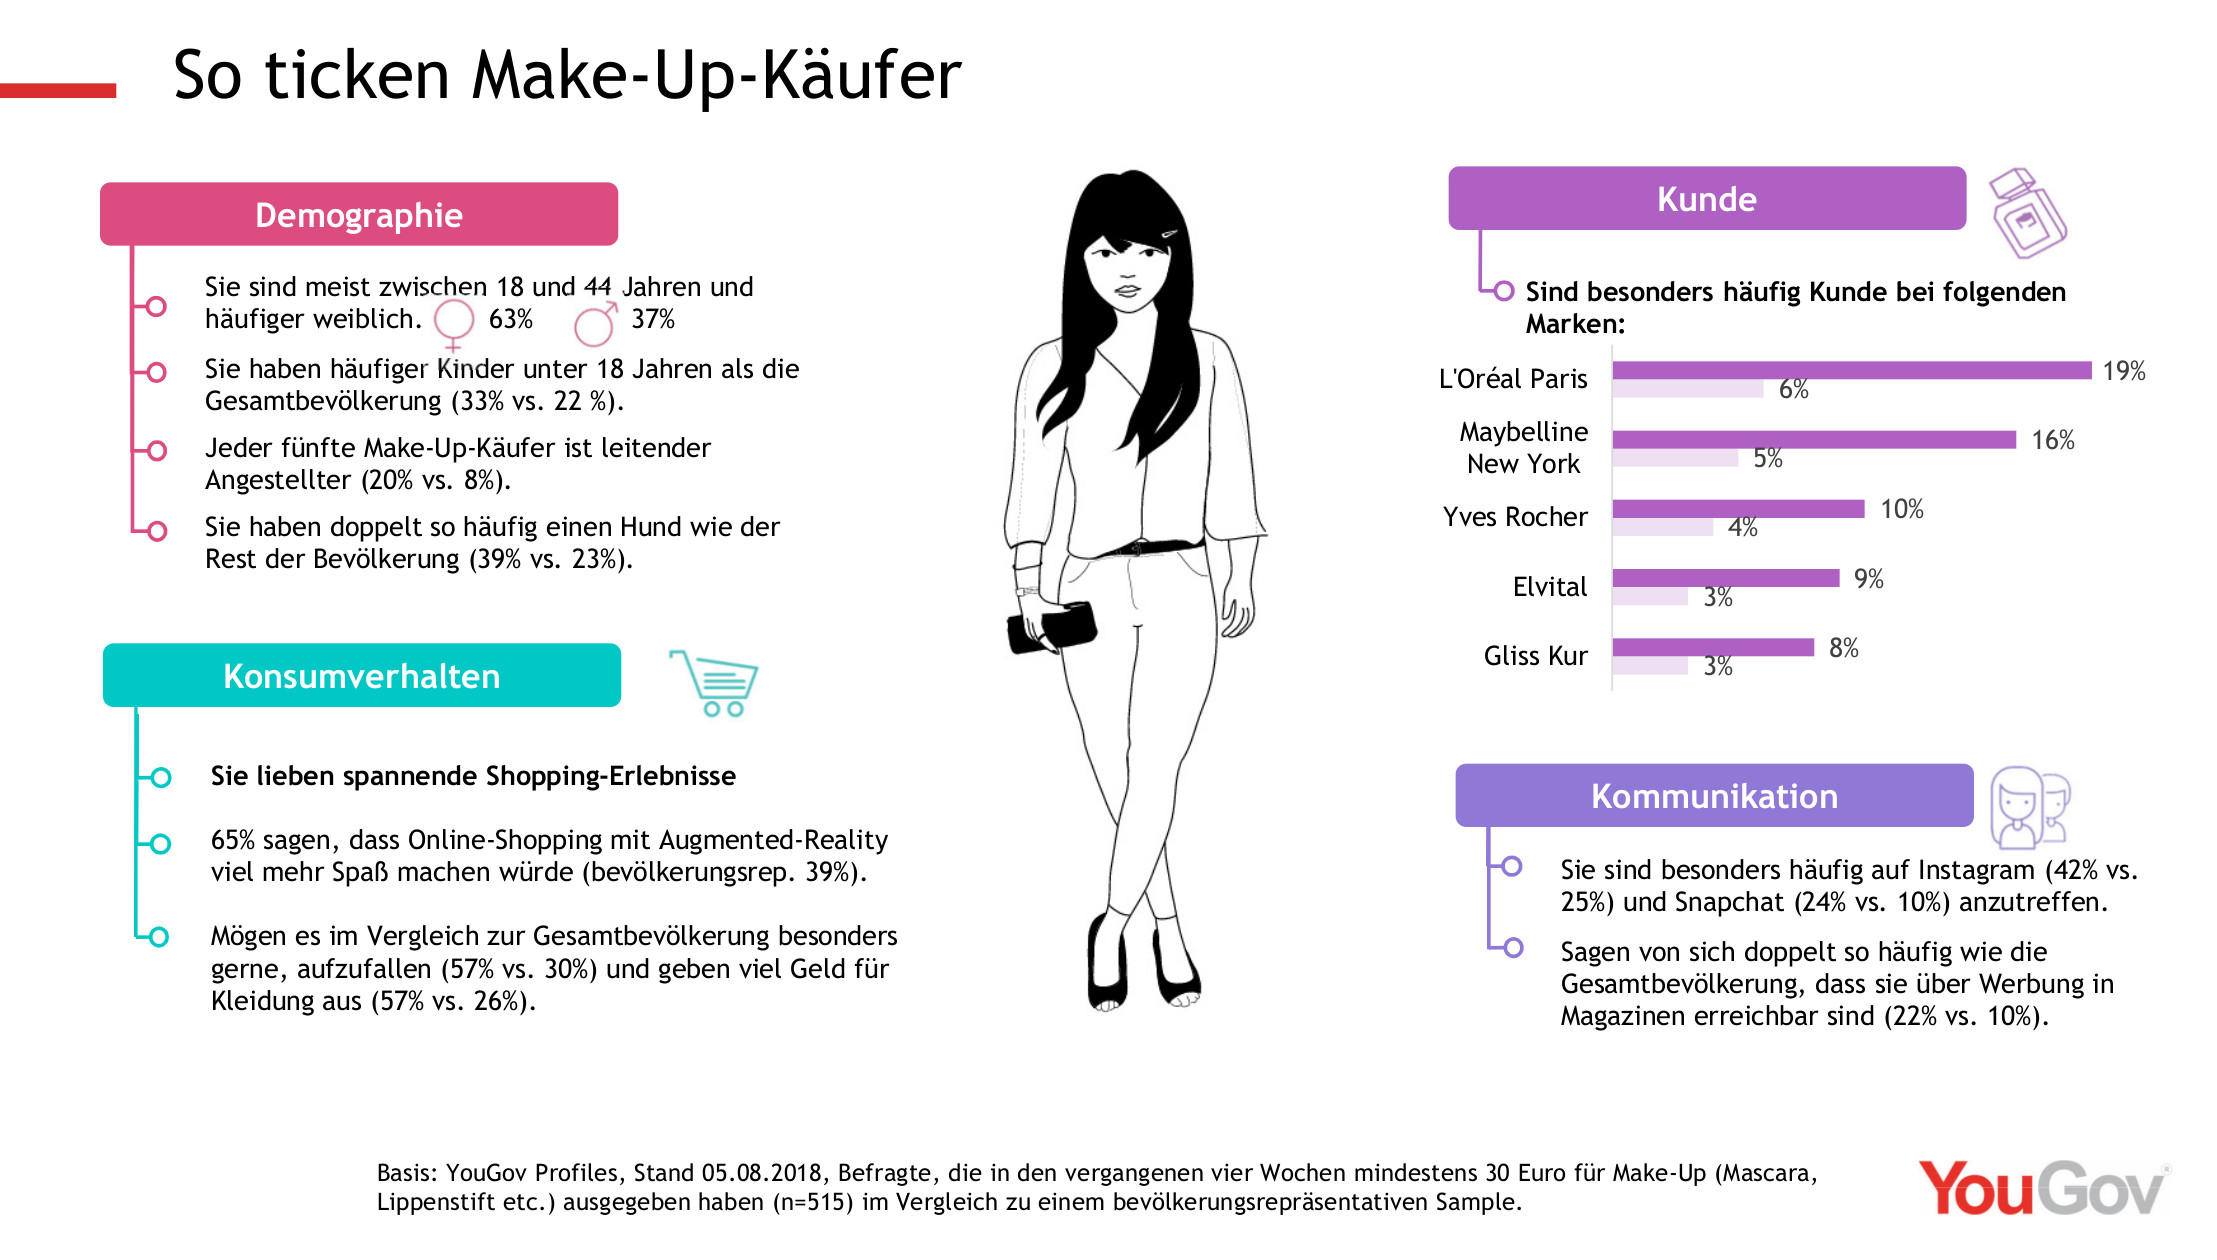 So ticken Make-Up-Käufer